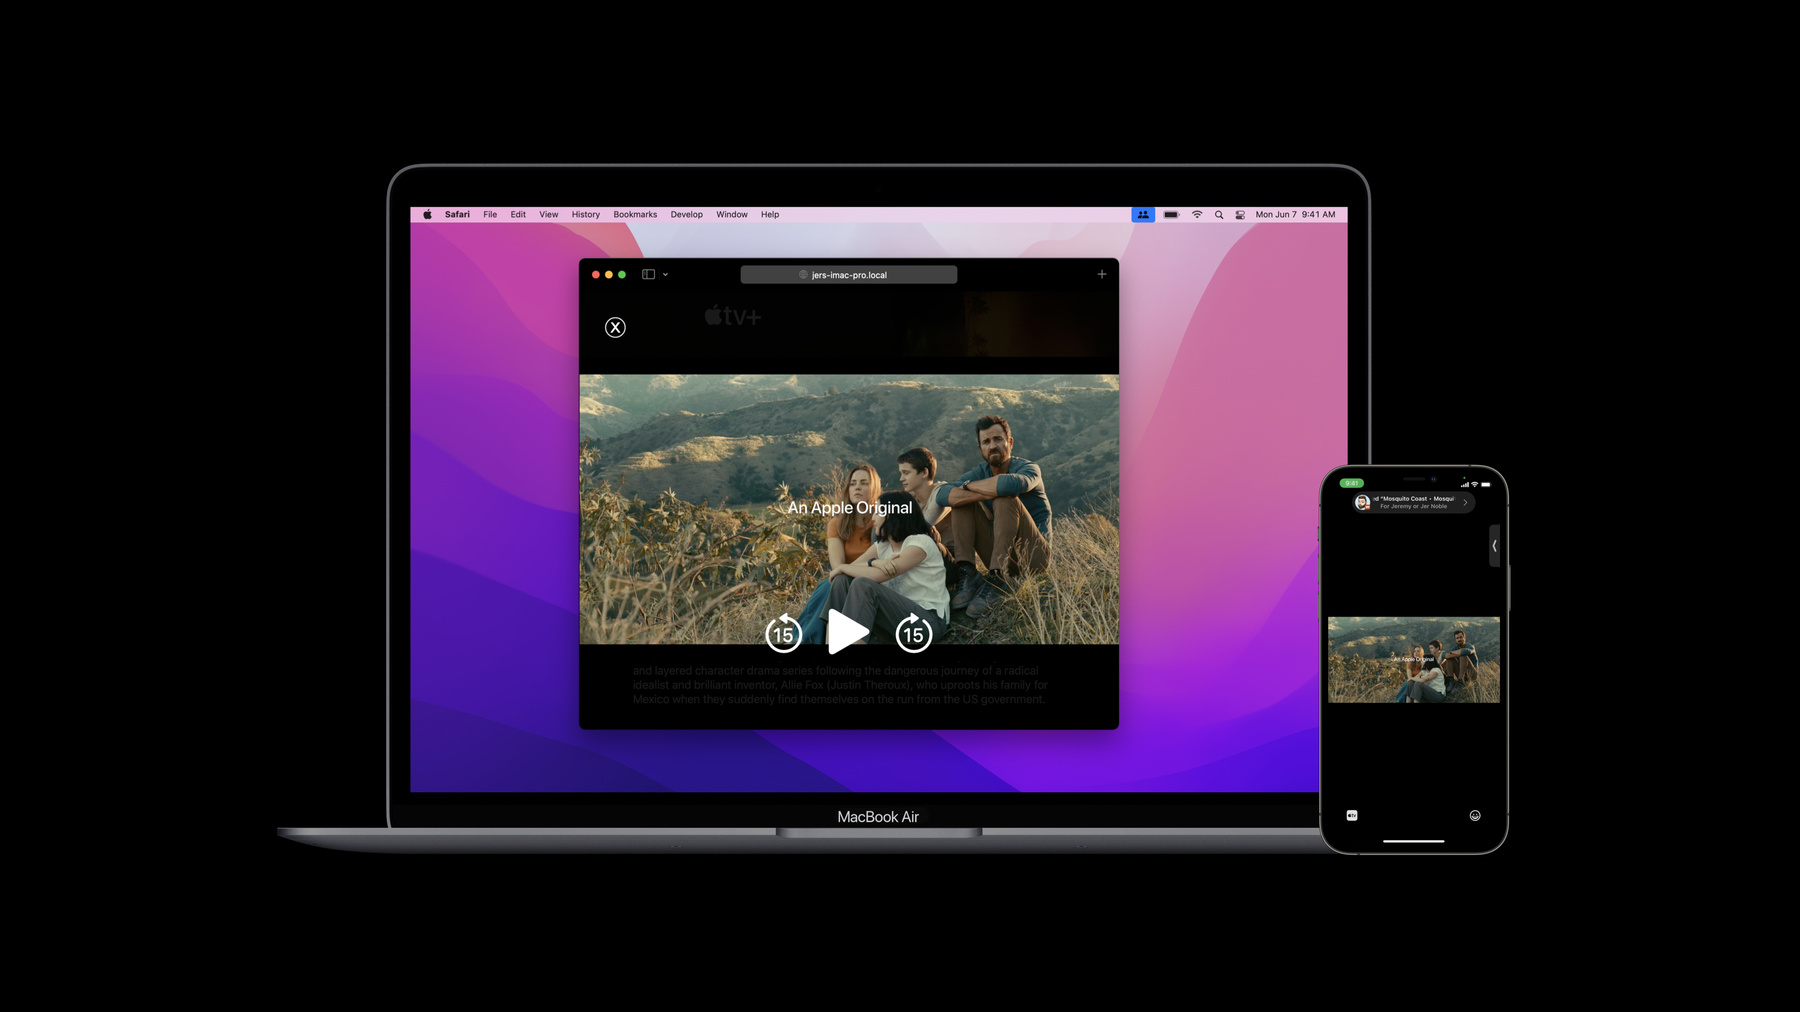 Synced video playback in Safari on macOS and iOS